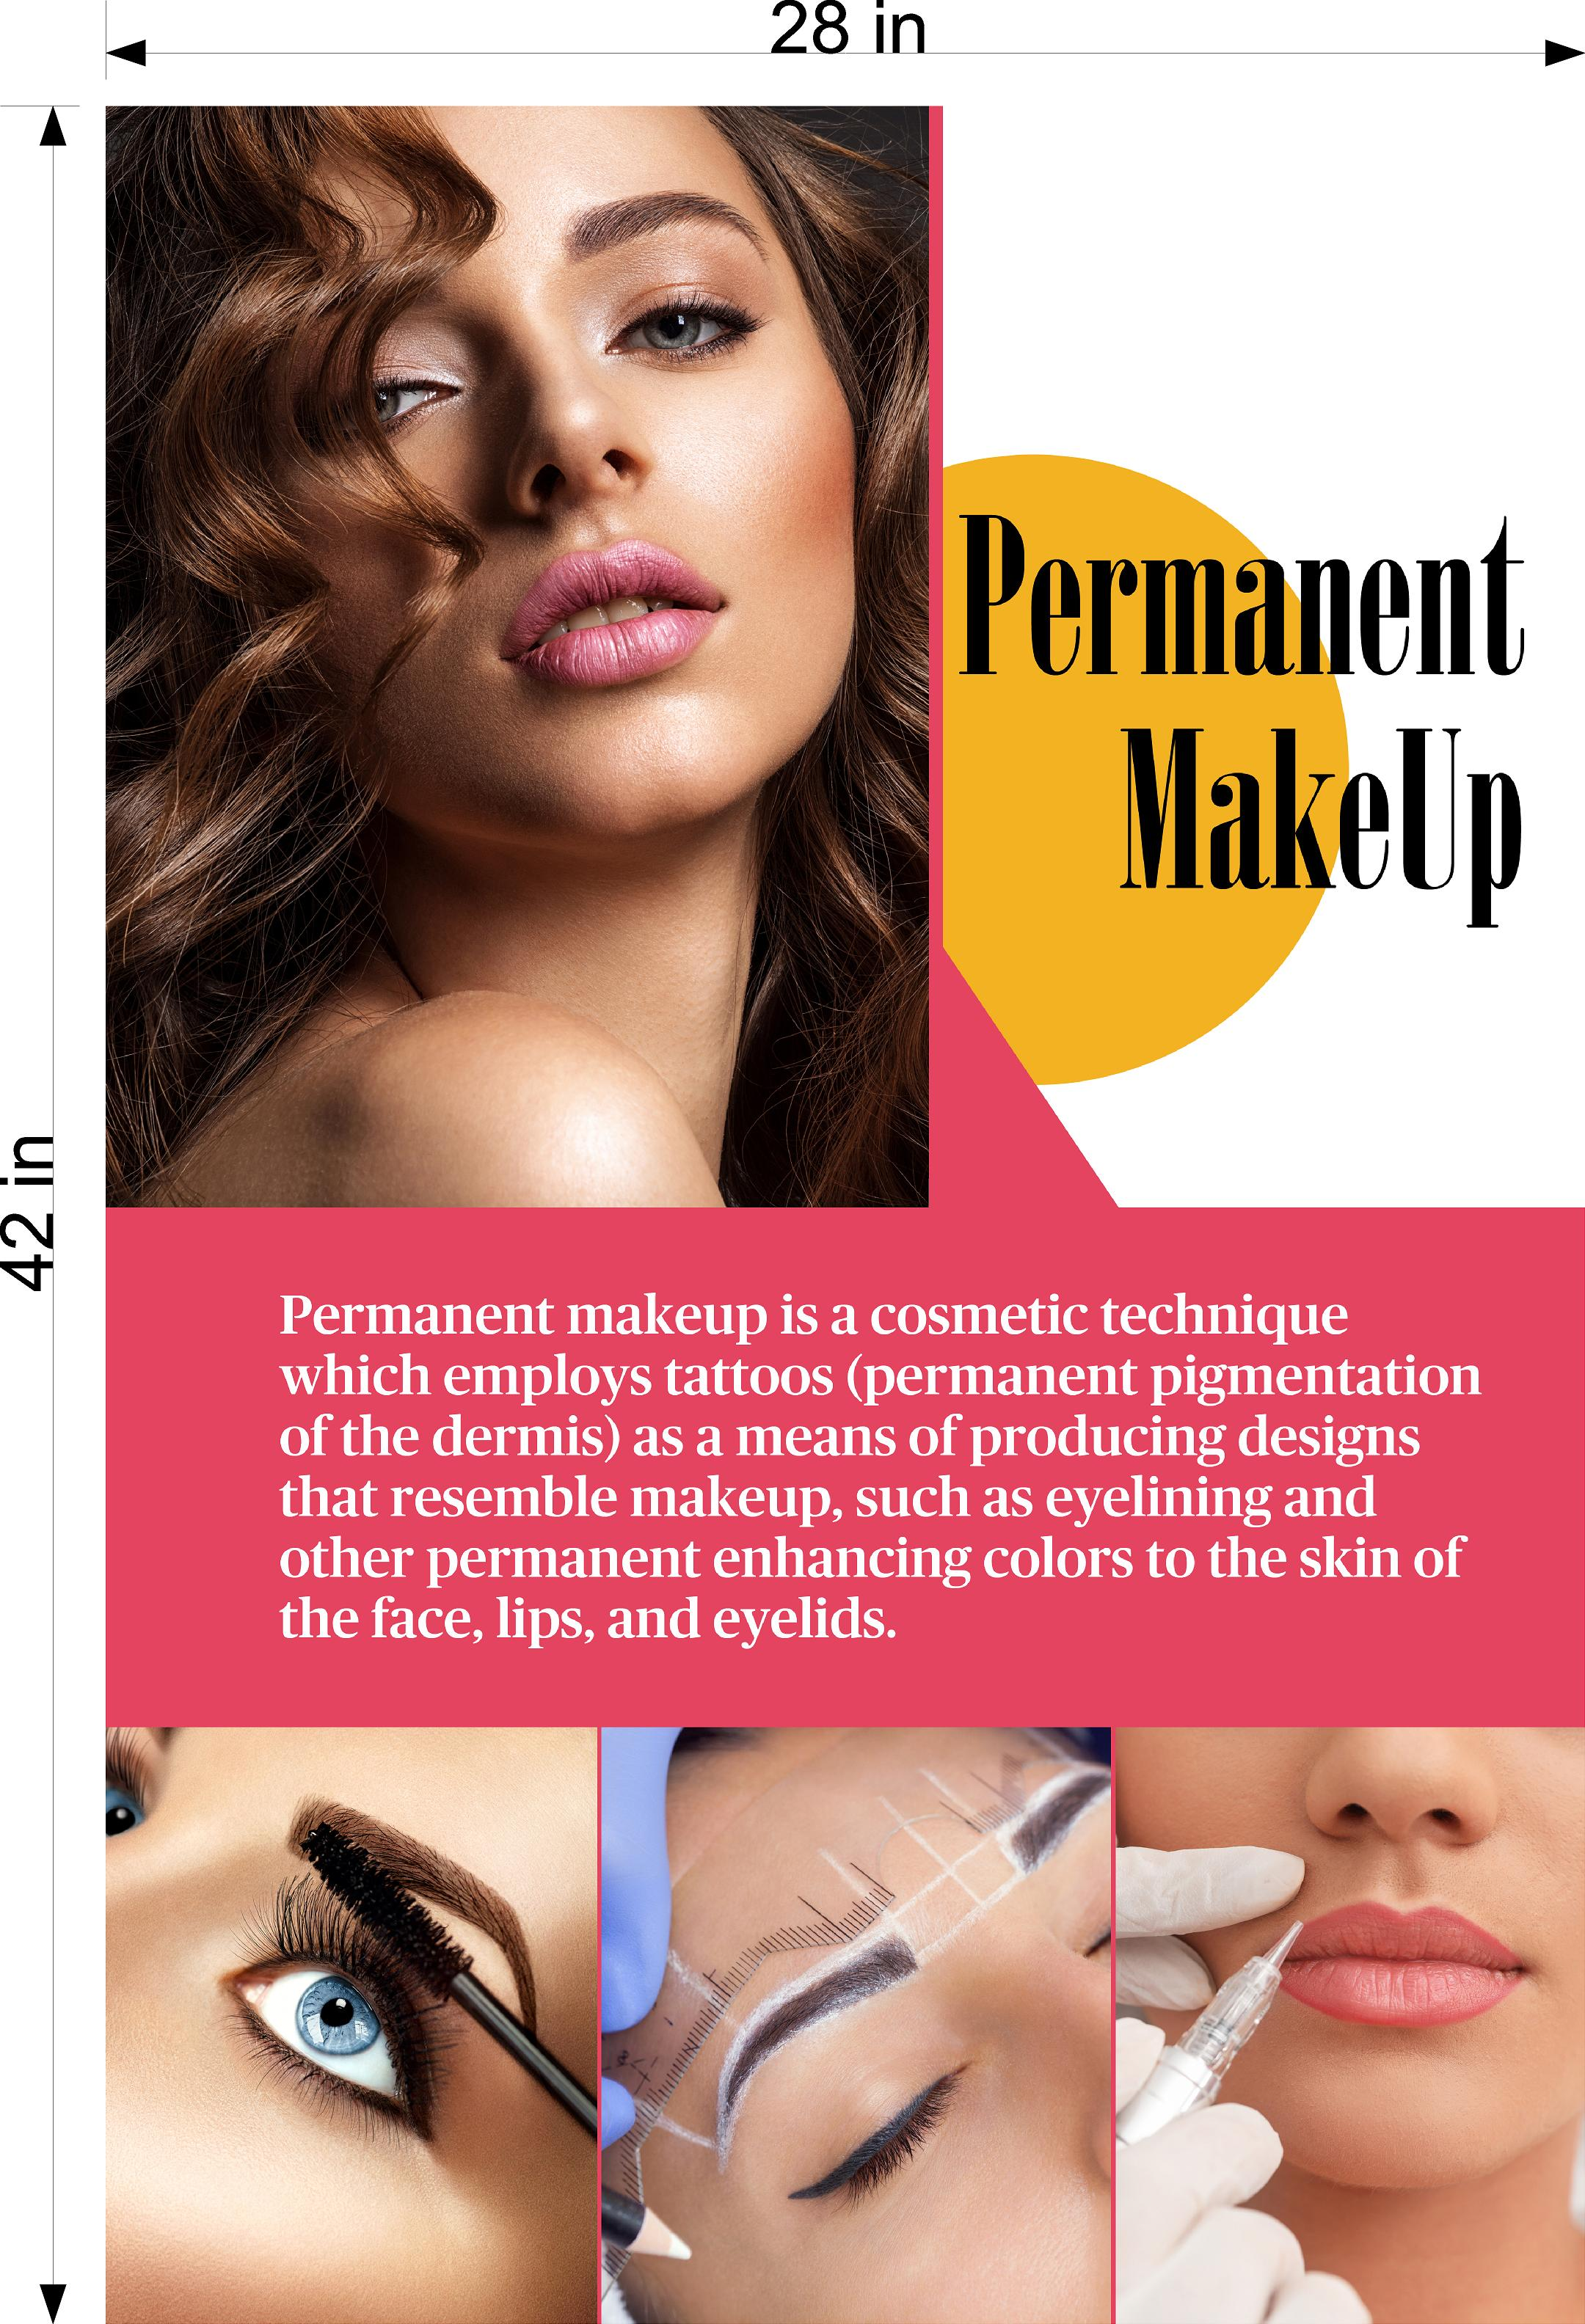 Permanent 27 Photo-Realistic Paper Poster Premium Matte Interior Inside Sign Wall Window Non-Laminated Makeup Eyebrows Lip Eyeliner Microblading Vertical